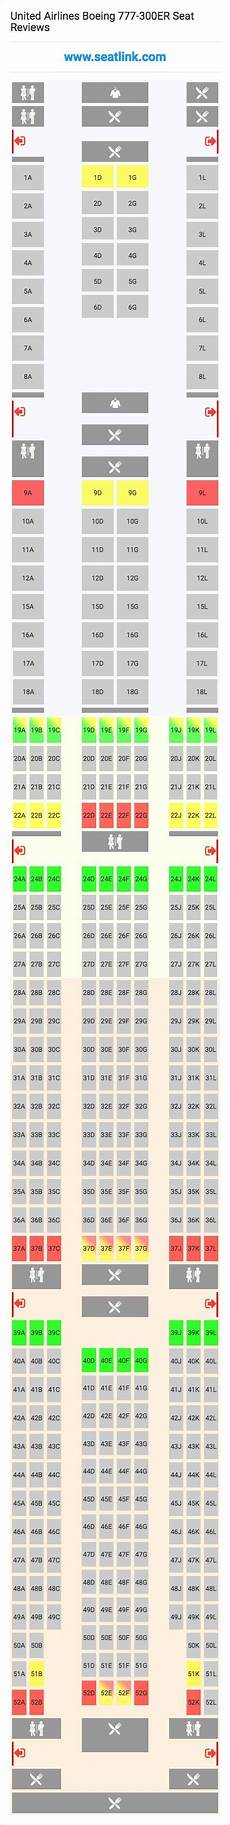 United Airlines Seating Chart 777 International United Airlines Boeing 777 300er 77w Seat Map Boeing